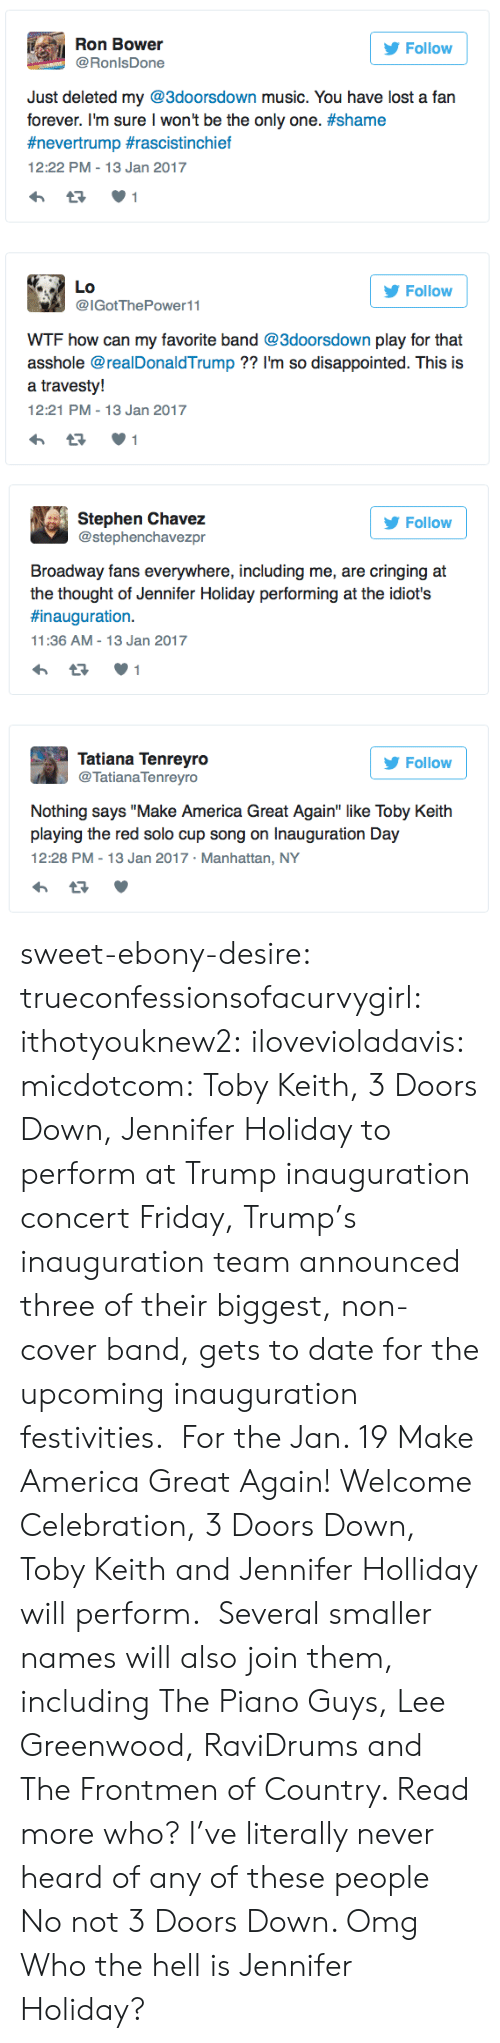 """toby keith: Ron Bower  Follow  @RonlsDone  Just deleted my @3doorsdown music. You have lost a fan  forever. I'm sure I won't be the only one. #shame  #nevertrump #rascistinchief  12:22 PM - 13 Jan 2017  1  Lo  Follow  @IGotThePower11  WTF how can my favorite band @3doorsdown play for that  asshole @realDonaldTrump ?? I'm so disappointed. This is  a travesty!  12:21 PM - 13 Jan 2017   Stephen Chavez  @stephenchavezpr  Follow  Broadway fans everywhere, including me, are cringing at  the thought of Jennifer Holiday performing at the idiot's  #inauguration.  11:36 AM - 13 Jan 2017  1  Tatiana Tenreyro  @Tatiana Tenreyro  Follow  Nothing says """"Make America Great Again"""" like Toby Keith  playing the red solo cup song on Inauguration Day  12:28 PM - 13 Jan 2017 Manhattan, NY sweet-ebony-desire:  trueconfessionsofacurvygirl:  ithotyouknew2:  ilovevioladavis:  micdotcom: Toby Keith, 3 Doors Down, Jennifer Holiday to perform at Trump inauguration concert Friday, Trump's inauguration team announced three of their biggest, non-cover band, gets to date for the upcoming inauguration festivities. For the Jan. 19 Make America Great Again! Welcome Celebration, 3 Doors Down, Toby Keith and Jennifer Holliday will perform. Several smaller names will also join them, including The Piano Guys, Lee Greenwood, RaviDrums and The Frontmen of Country. Read more   who?  I've literally never heard of any of these people  No not 3 Doors Down. Omg  Who the hell is Jennifer Holiday?"""